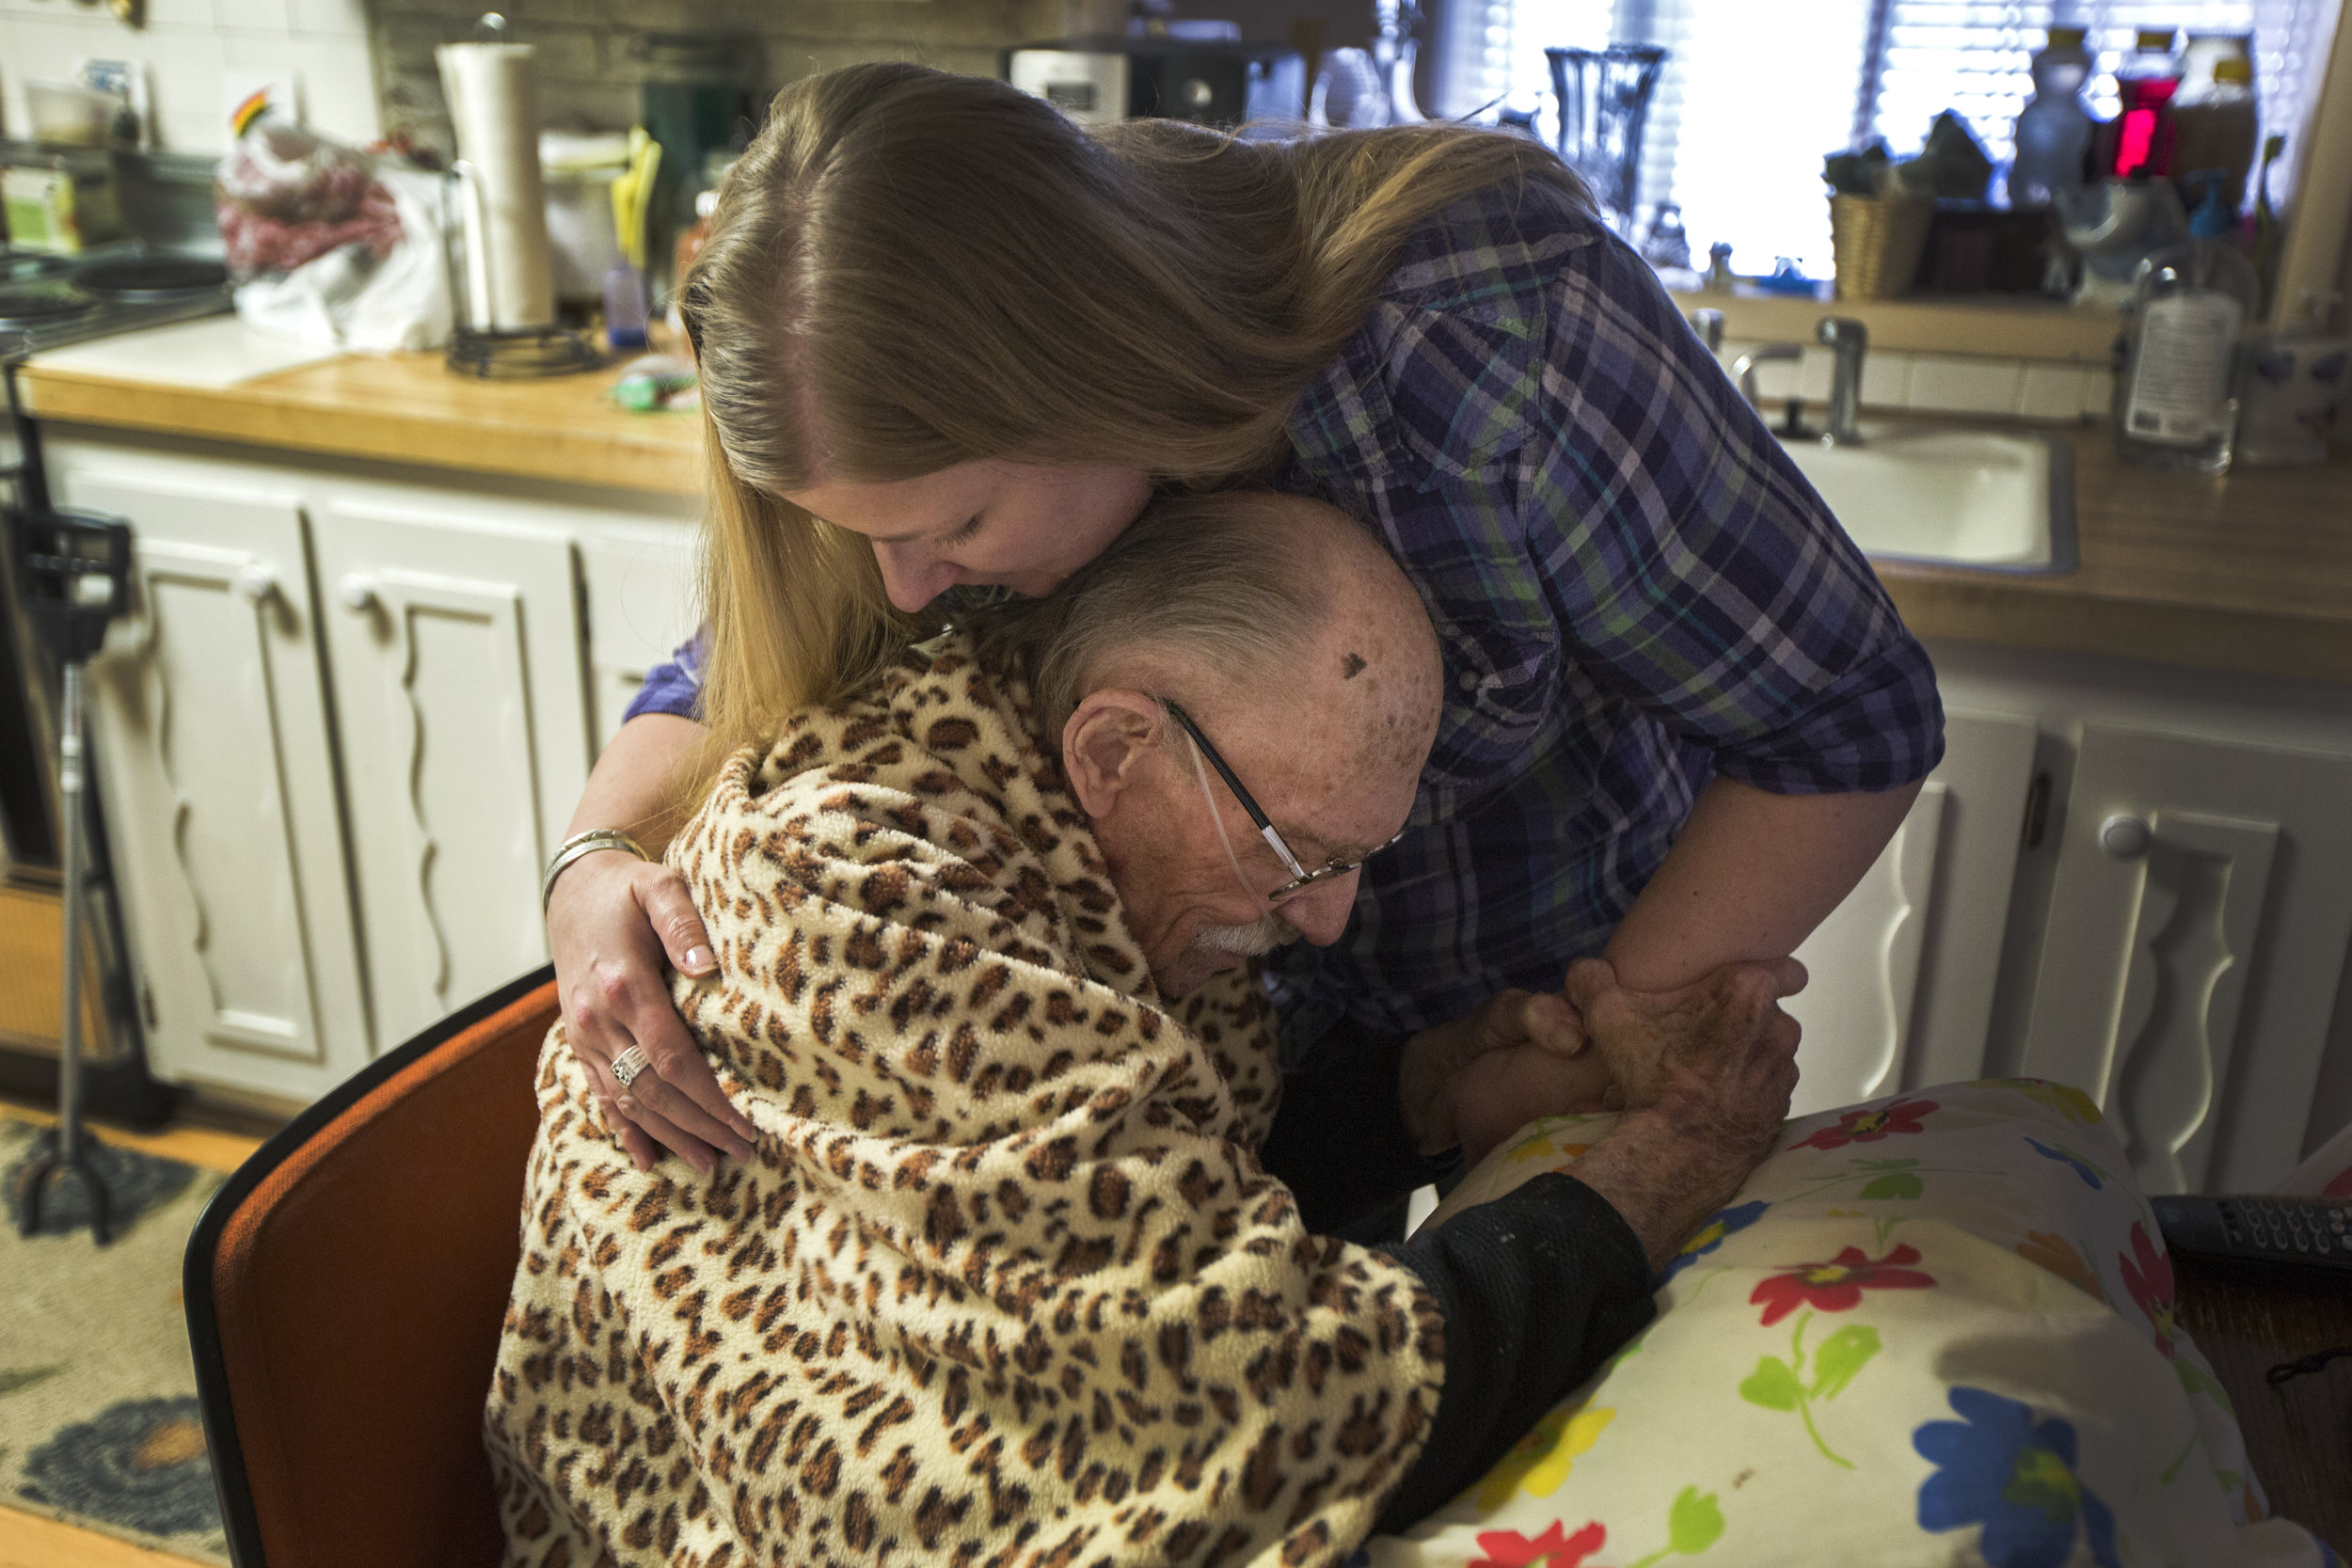 """""""It's rough,"""" Jasmine Parker said about taking care of her father. """"I don't know if it's going to be weeks or months. I mean I feel like he doesn't have that much longer to go."""" The Lehi resident said this Jan. 27 about her 79-year-old father, Richard """"Dick"""" Fisher, of Cottonwood Heights, who died March 20. Fisher quit smoking more than 20 years ago, but died of chronic obstructive pulmonary disease (COPD) which Mayo Clinic defines as """"a chronic inflammatory lung disease that causes obstructed airflow from the lungs."""" Fisher would receive help throughout the week from various professionals and Parker would visit her father every weekend and sometimes throughout the week depending on her schedule. """"It's hard to run two households,"""" she said speaking also about her own family. """"But what do you do? I mean they take care of you when you're little so I mean it's the right thing to do."""" Pictured: Fisher is embraced by his daughter, Parker, before she departs from her father's home Jan. 27 in Cottonwood Heights. — Jan. 27, 2018, Cottonwood Heights, Utah."""